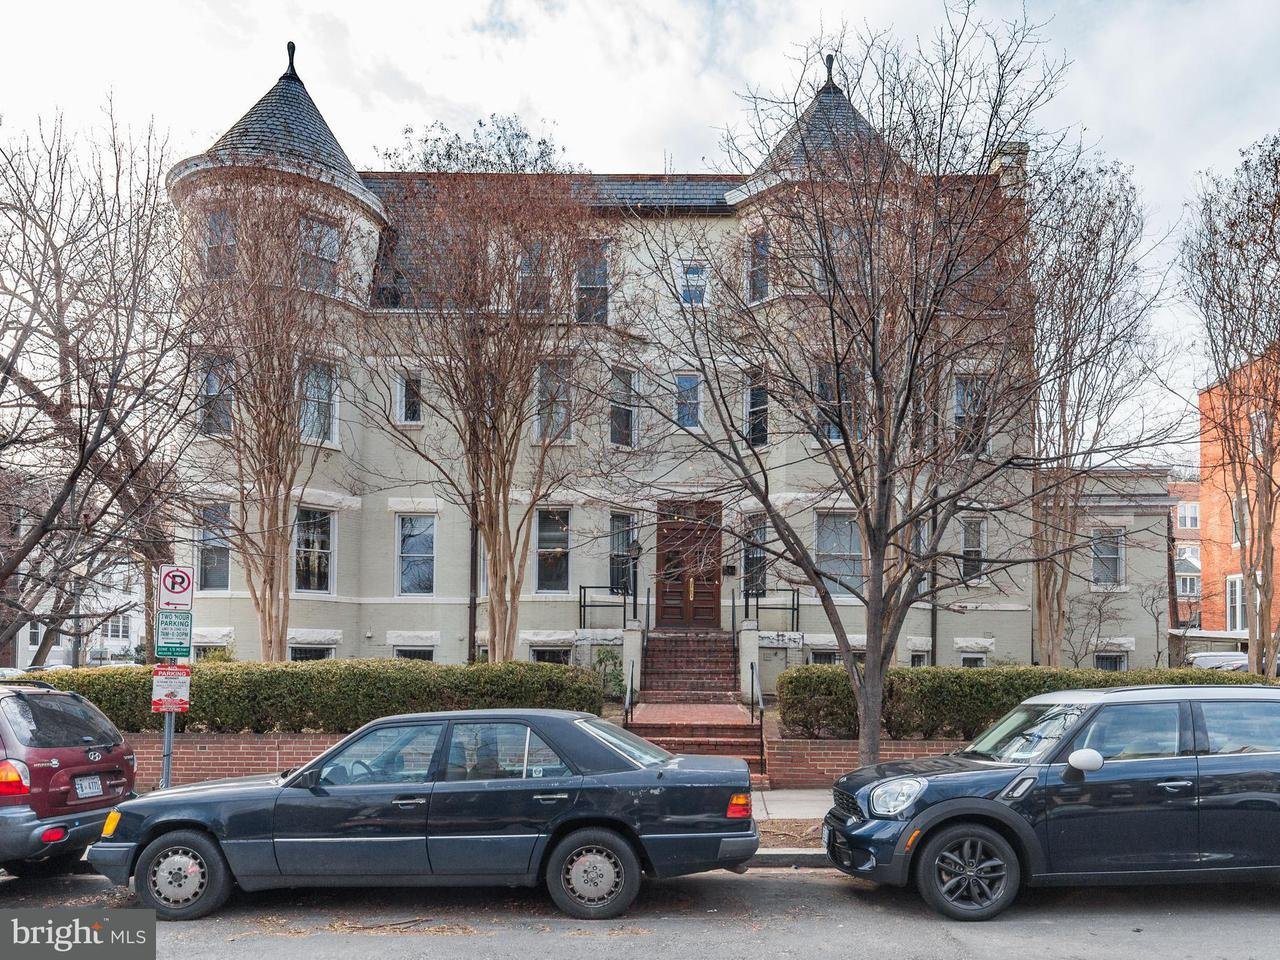 Multi-Family Home for Sale at 1800 19th St Nw 1800 19th St Nw Washington, District Of Columbia 20009 United States